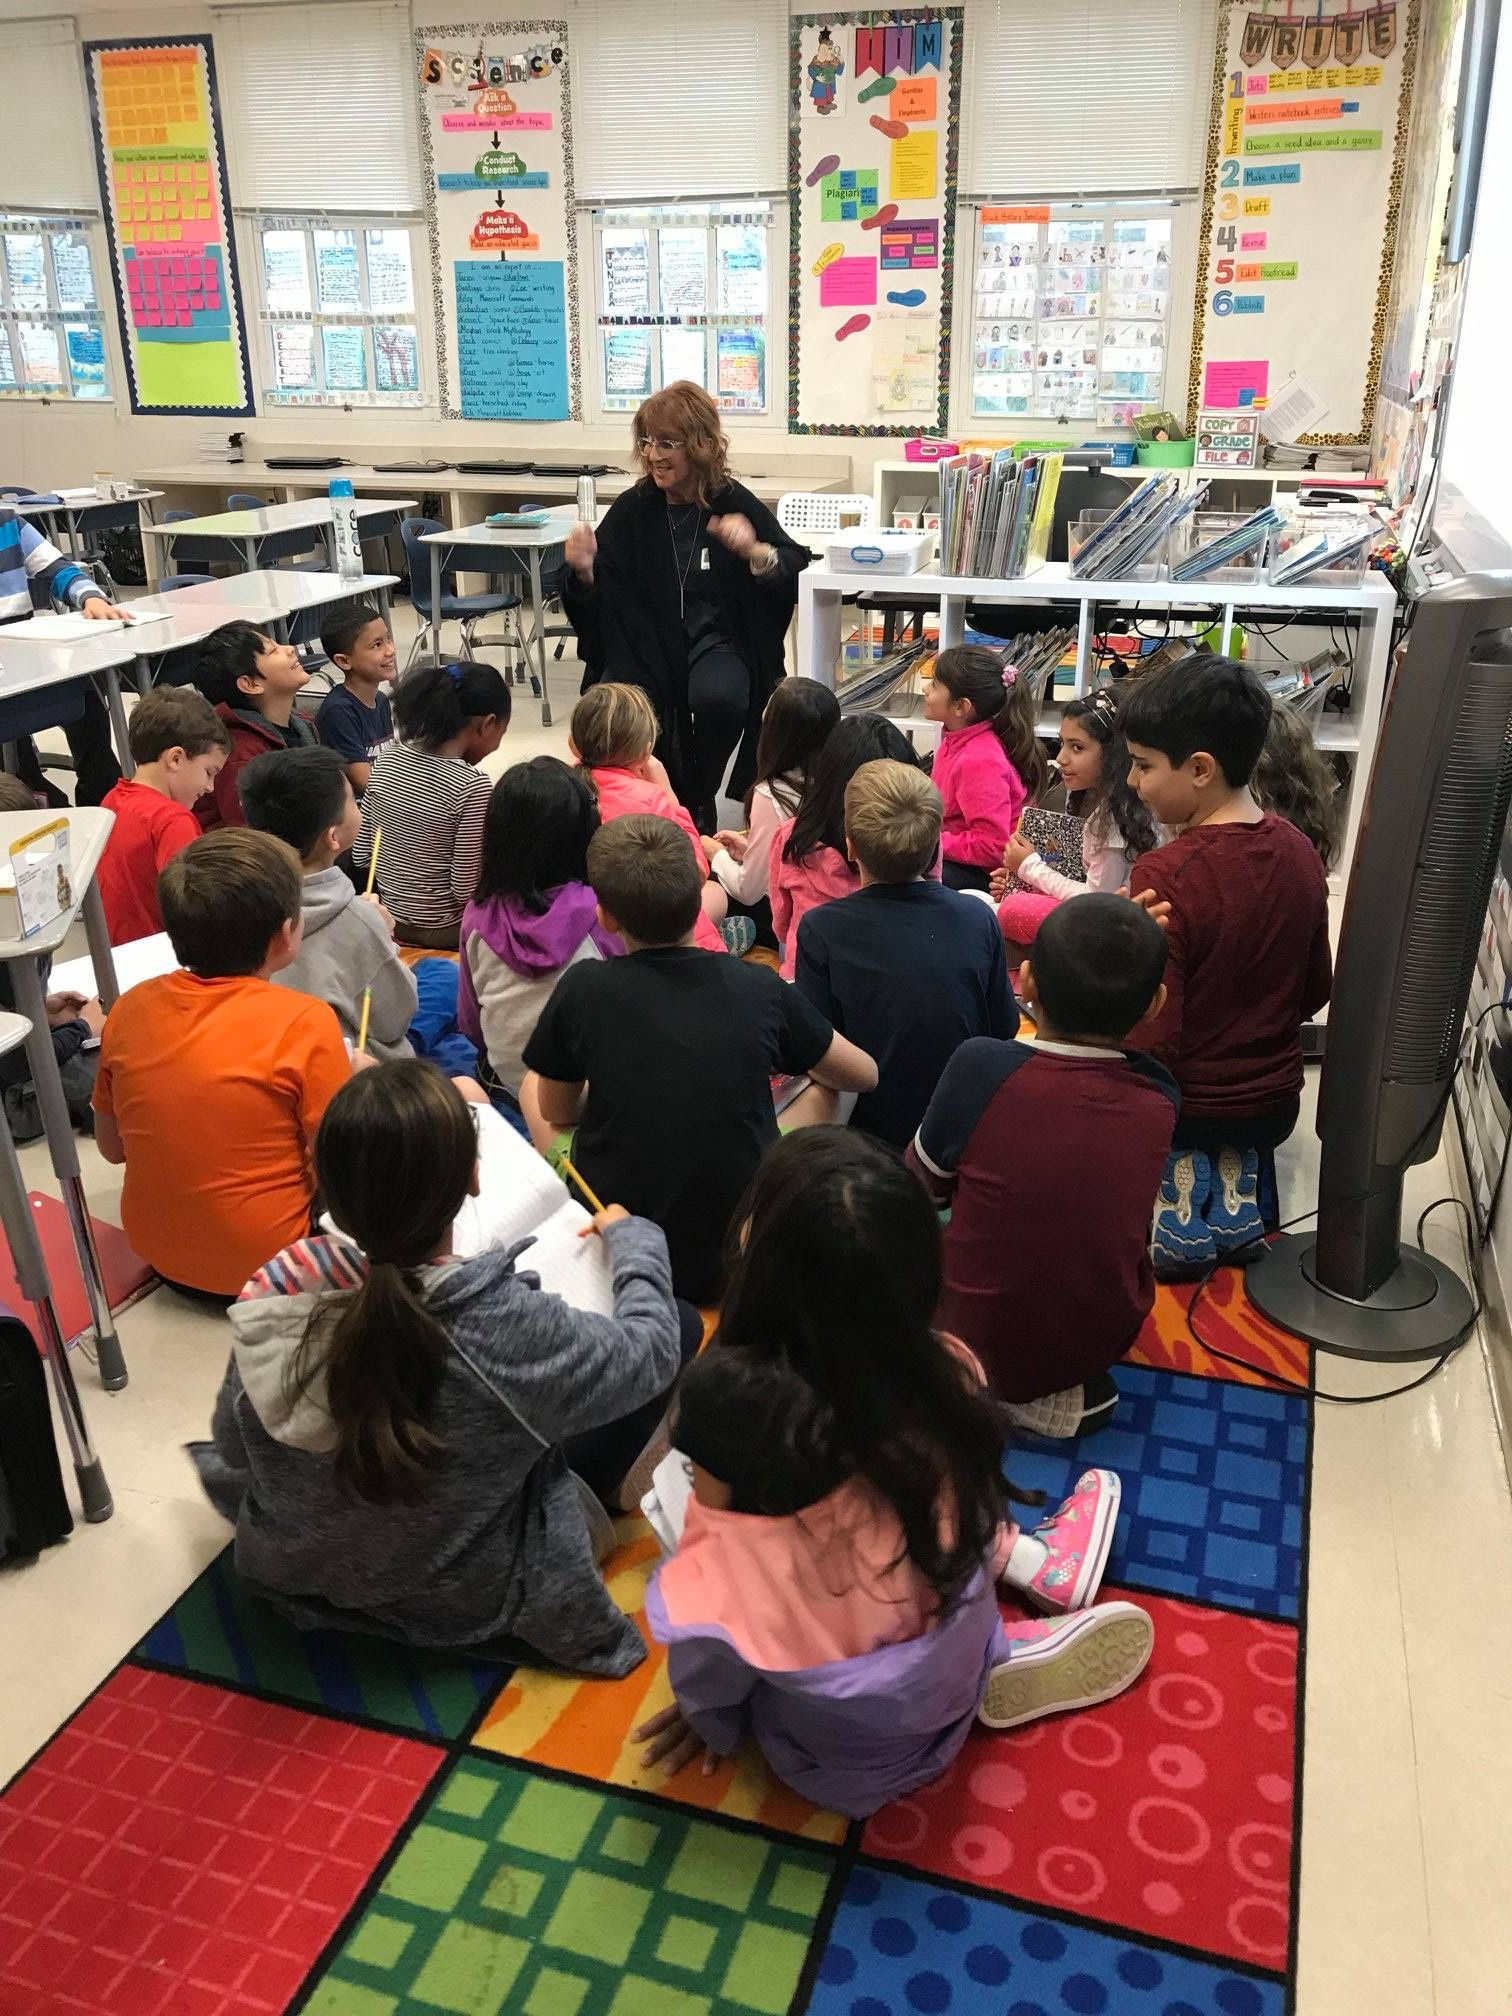 A.L.L. at River Oaks Elementary in Houston